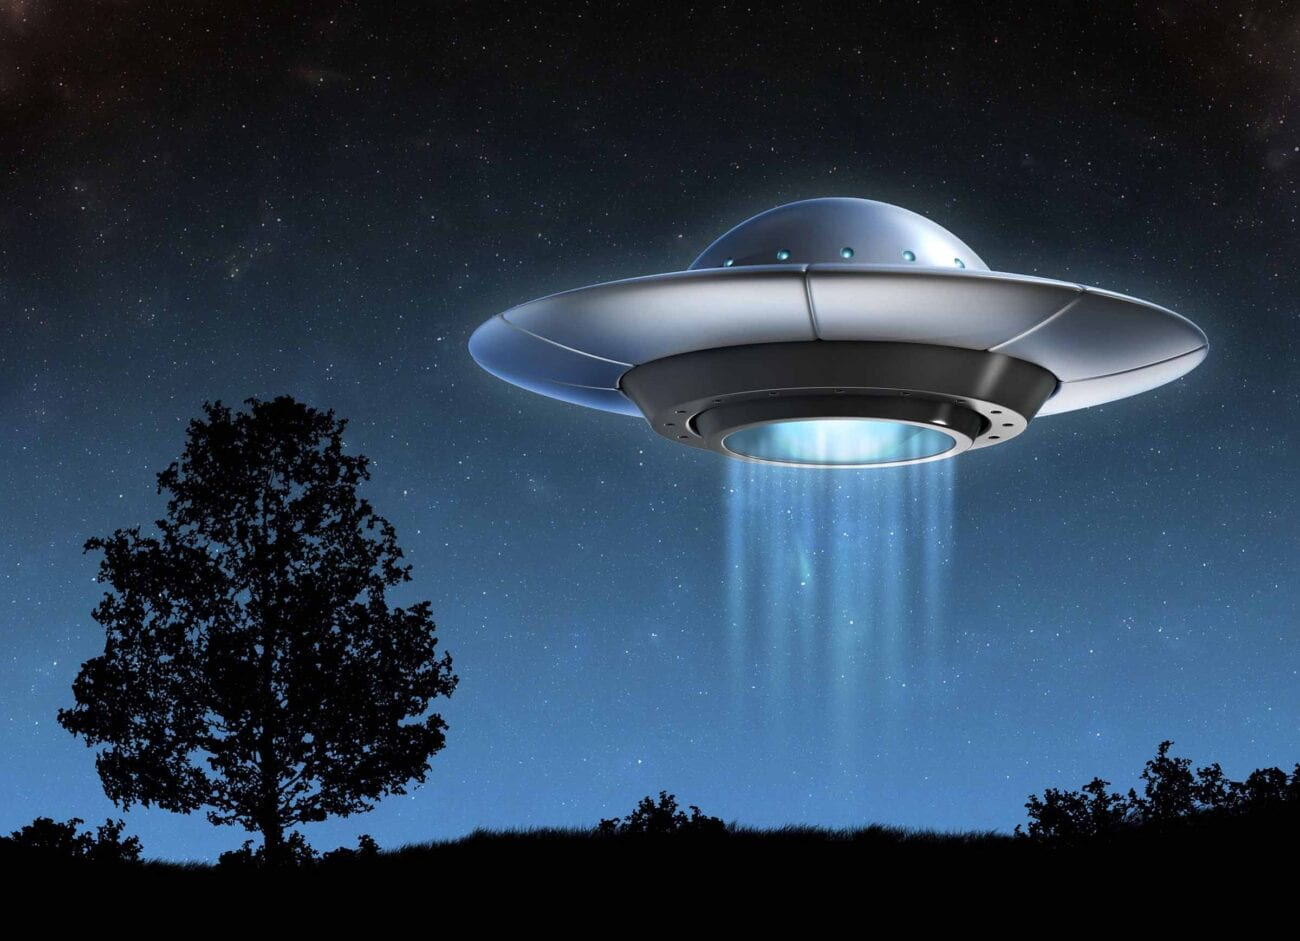 If you believe UFOs are real, then you should join one of these UFO-based religious groups. From Raelism to Universe People, they all believe in aliens.